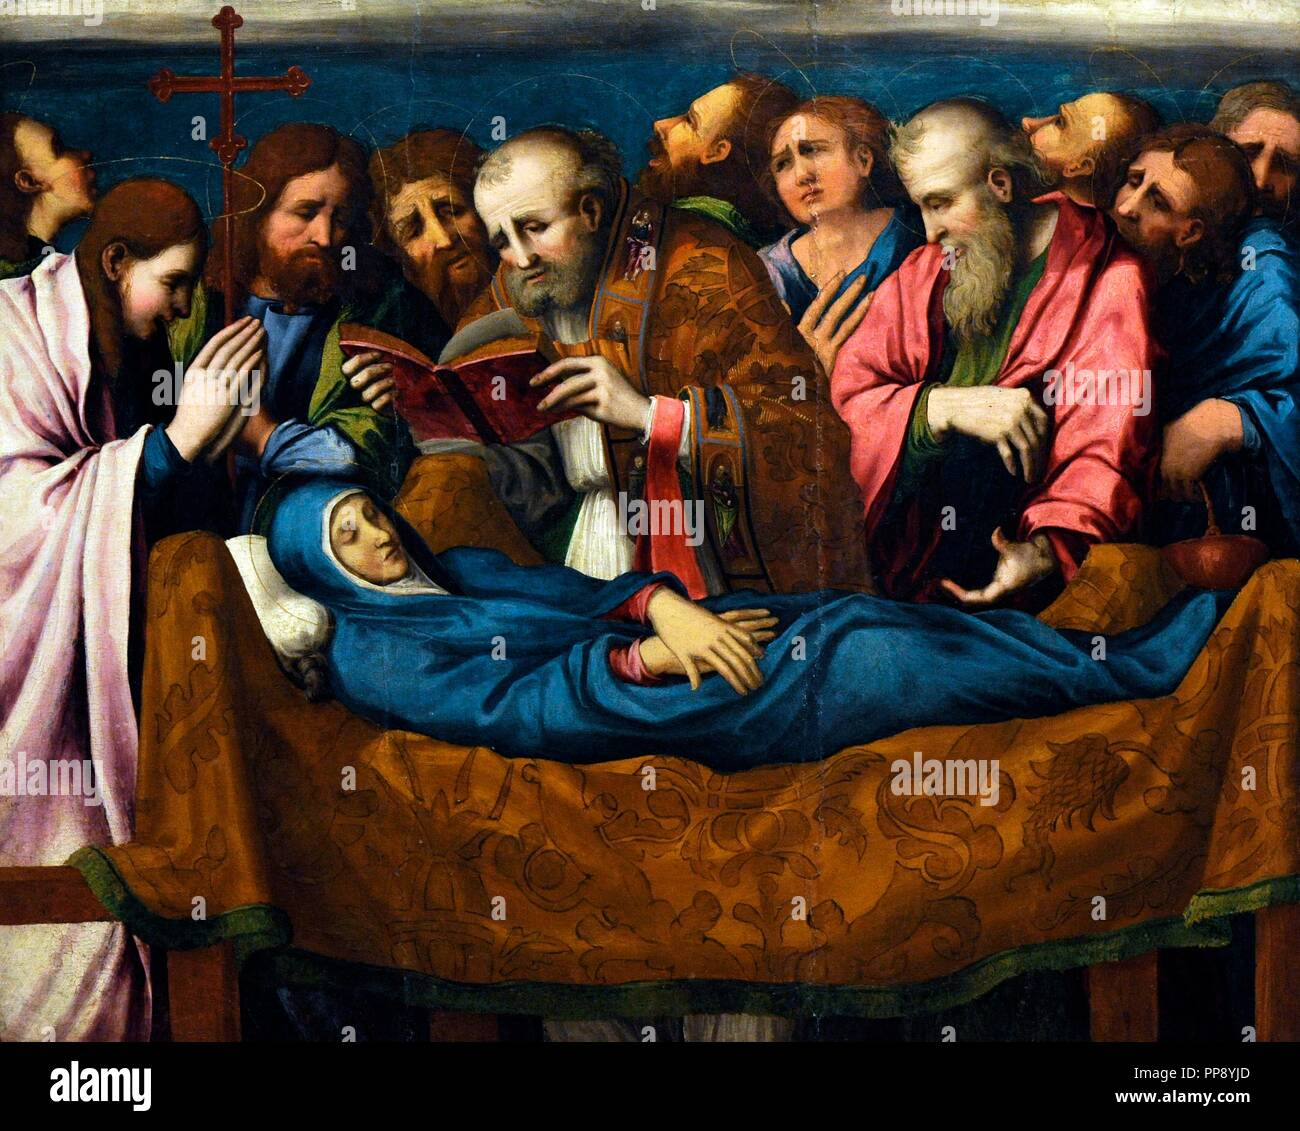 Marco Cardisco (1486-1542). Italian painer. Dormition of the Mother of God. Oil on the table. 1535-40. Museum of Capodimonte. Naples. Italy. Stock Photo